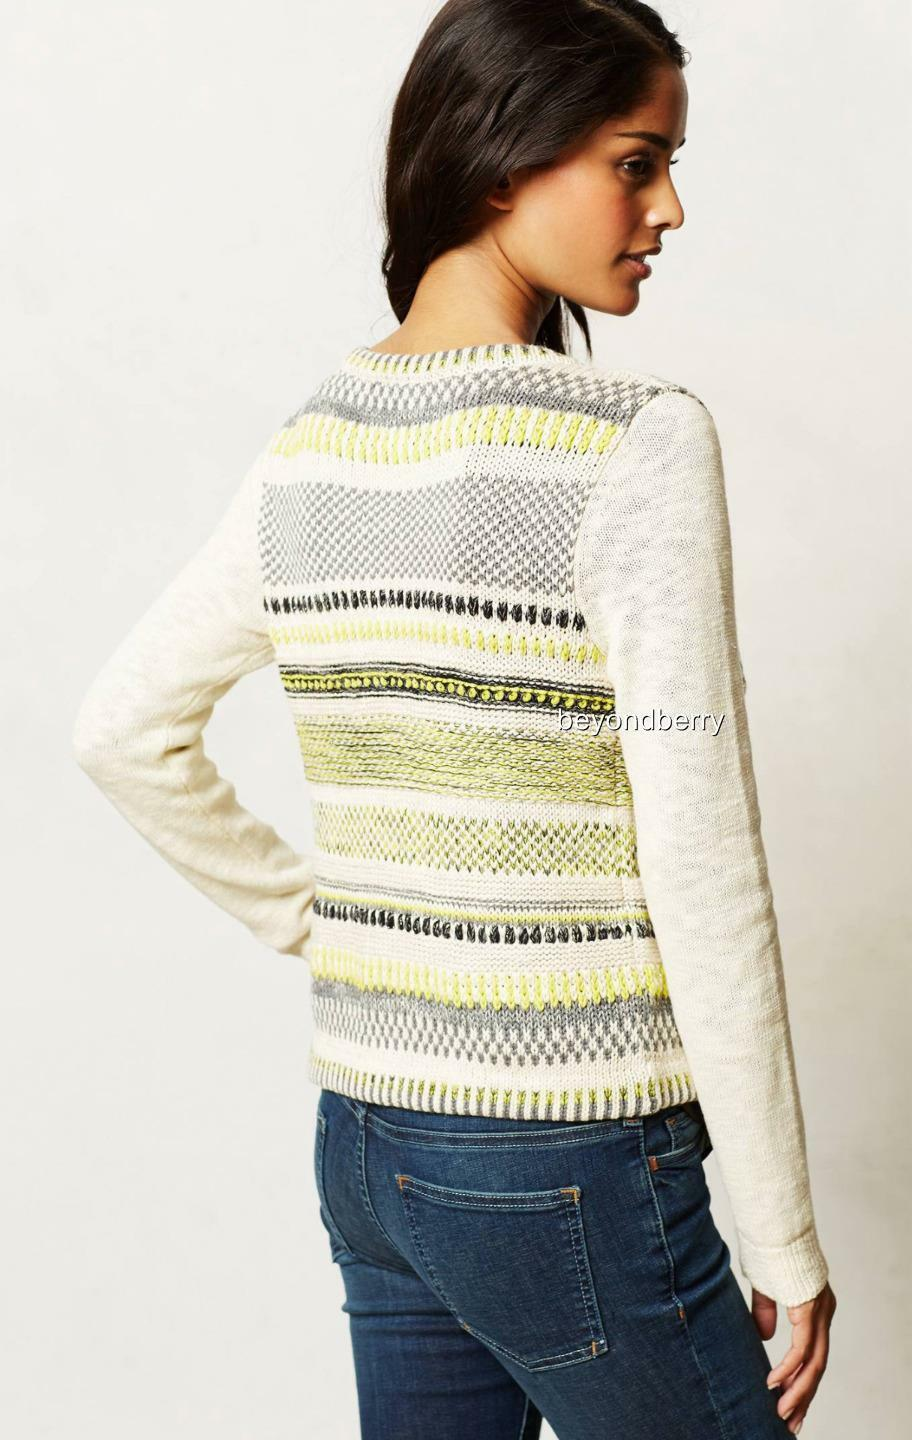 NEW NEW NEW Anthropologie Chaux Cardigan by Moth  Size M b59c76